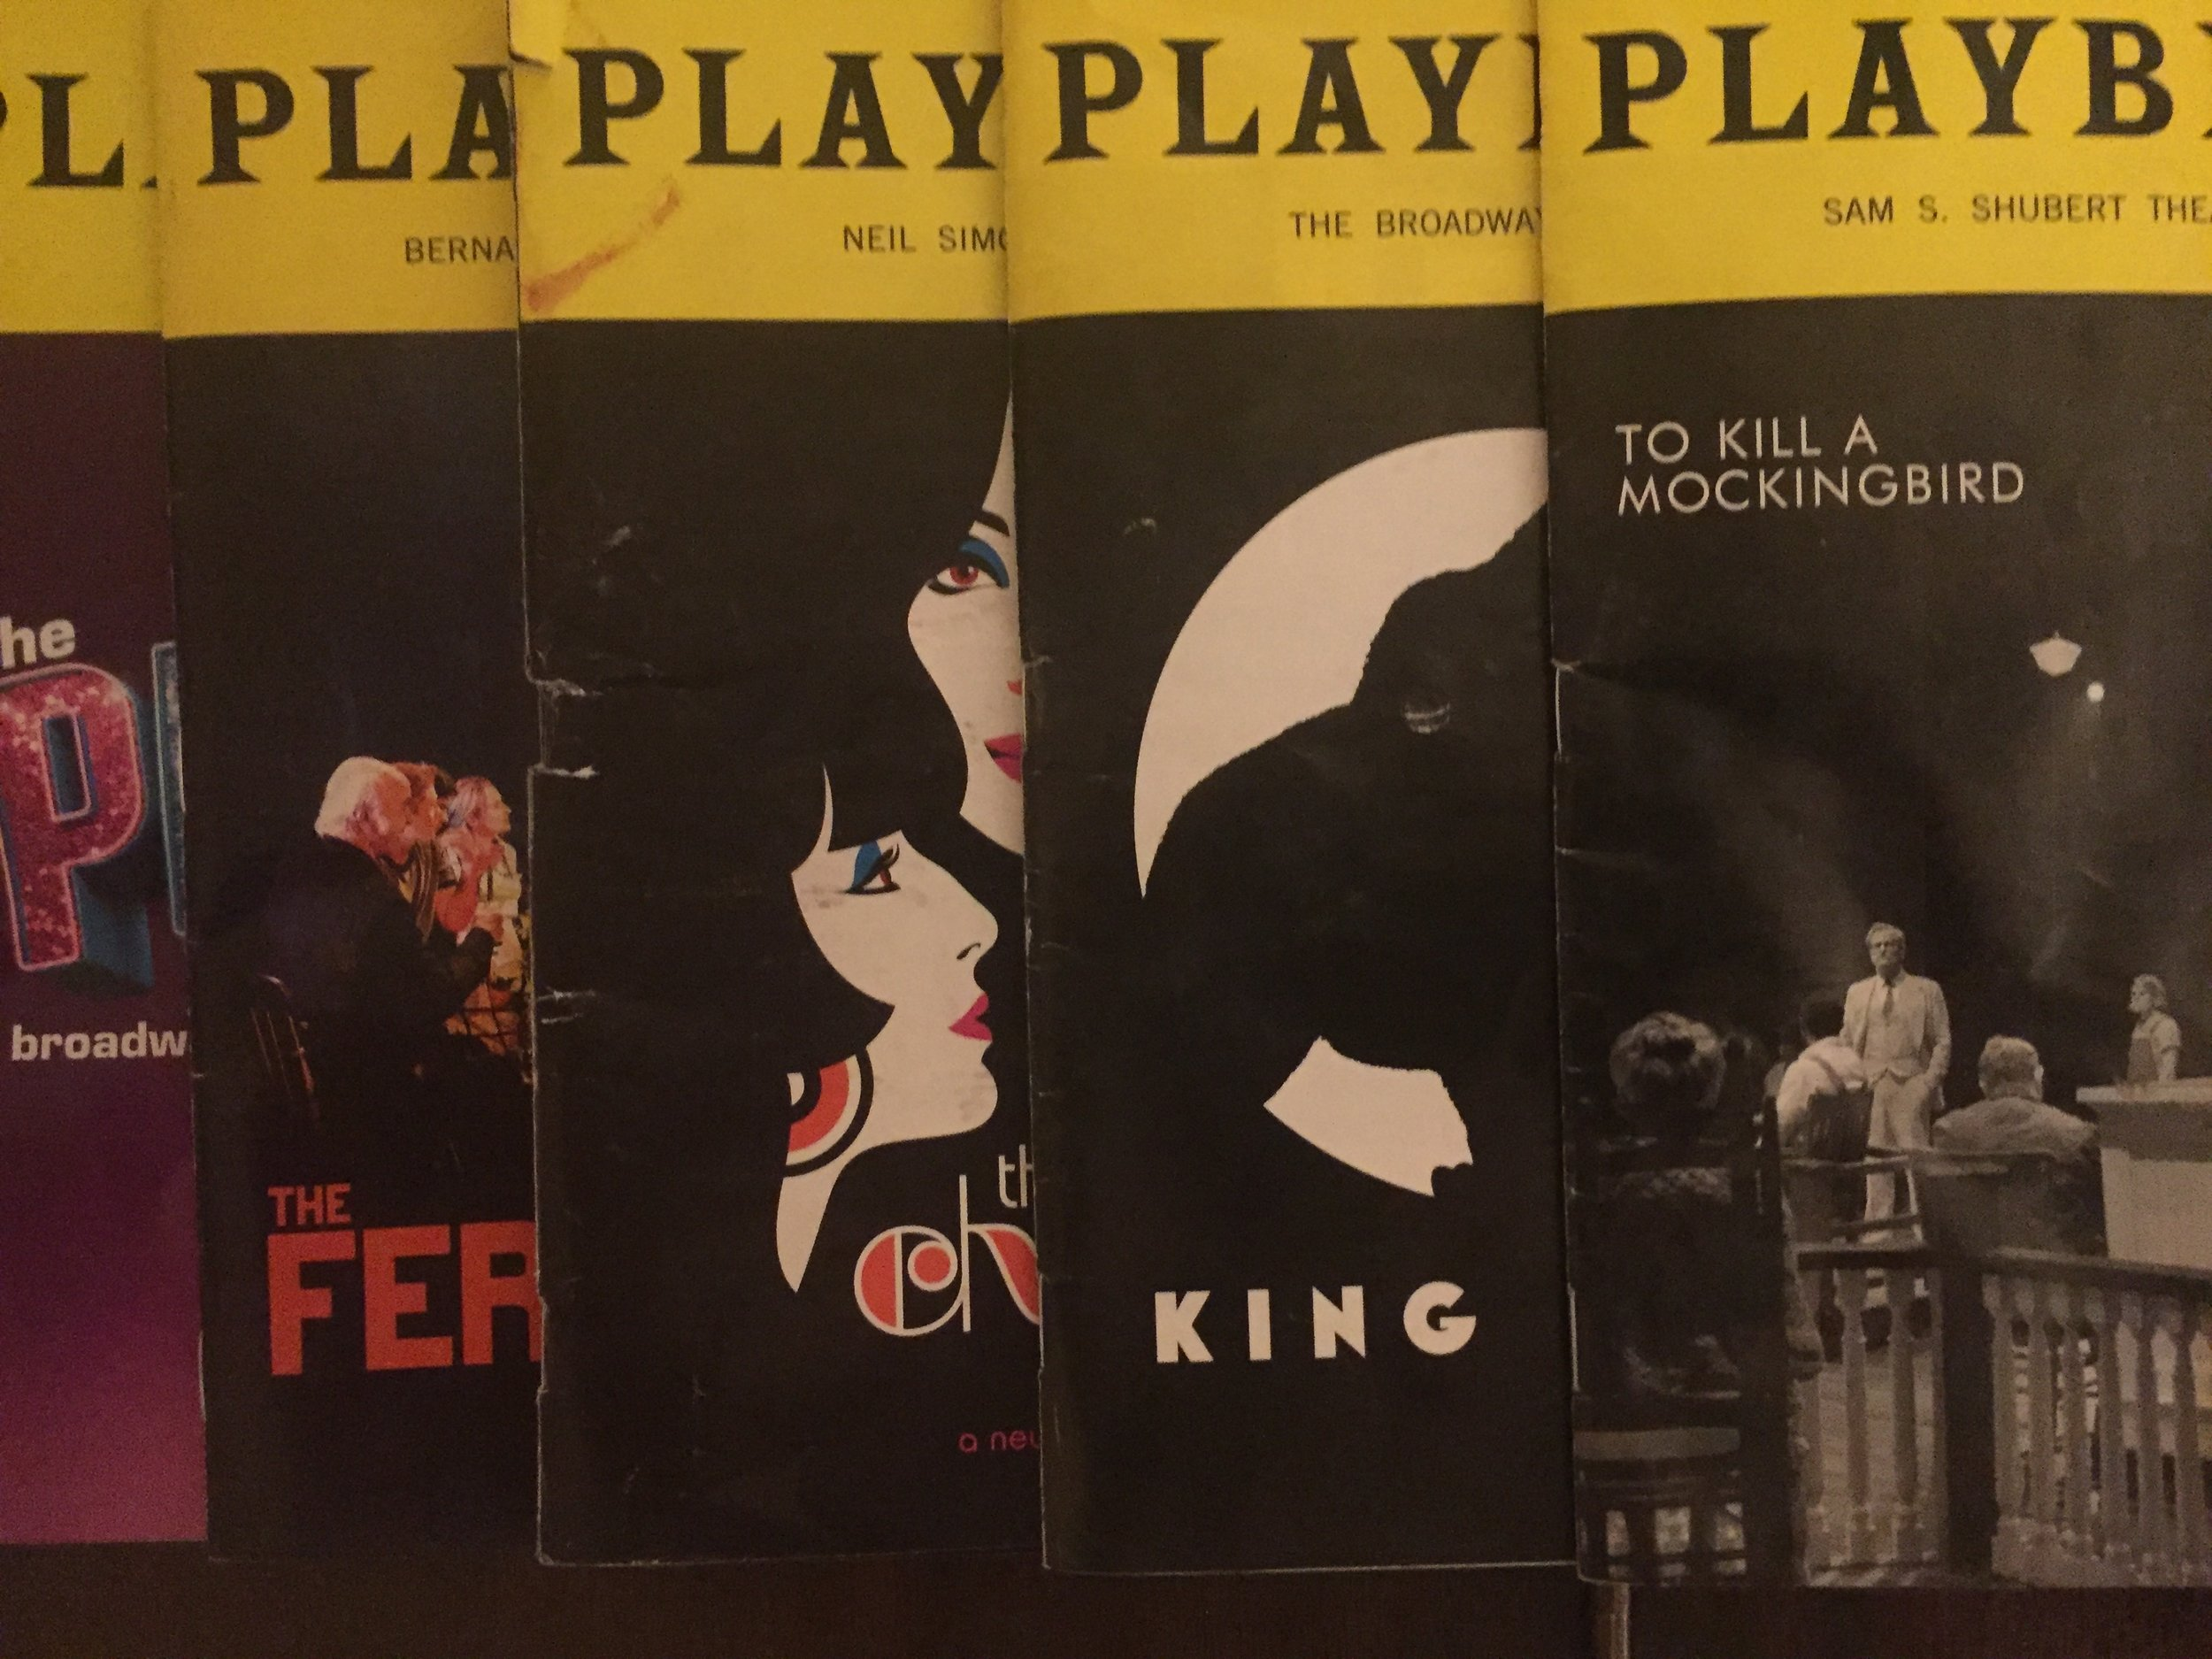 The Bible - IF THEATER IS YOUR RELIGION, each edition of Playbill is a sacred object. Playbill was first published in 1884. That theater season included Gilbert & Sullivan's